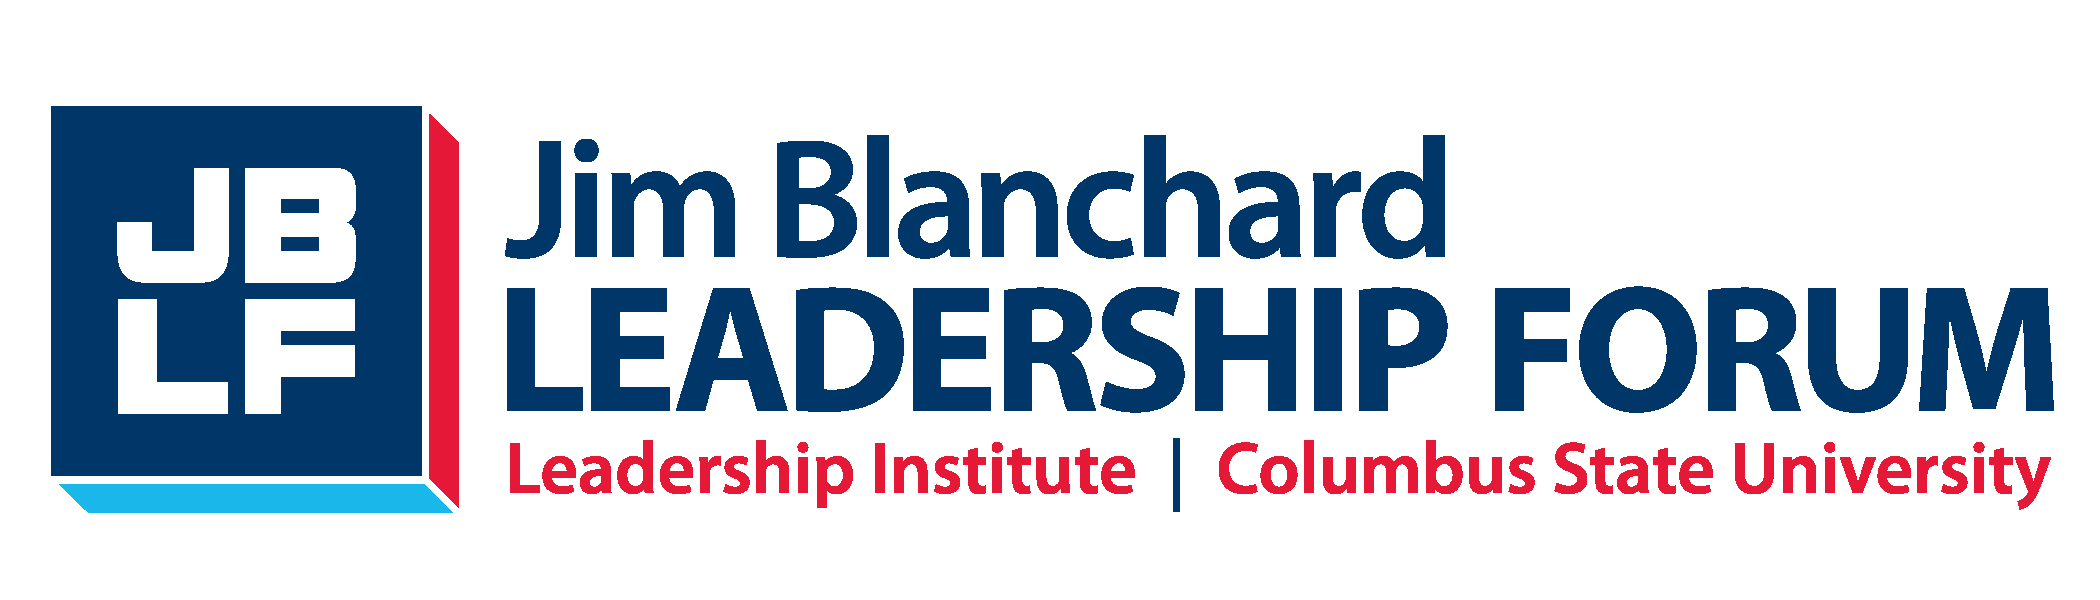 Jim Blanchard Leadership Forum